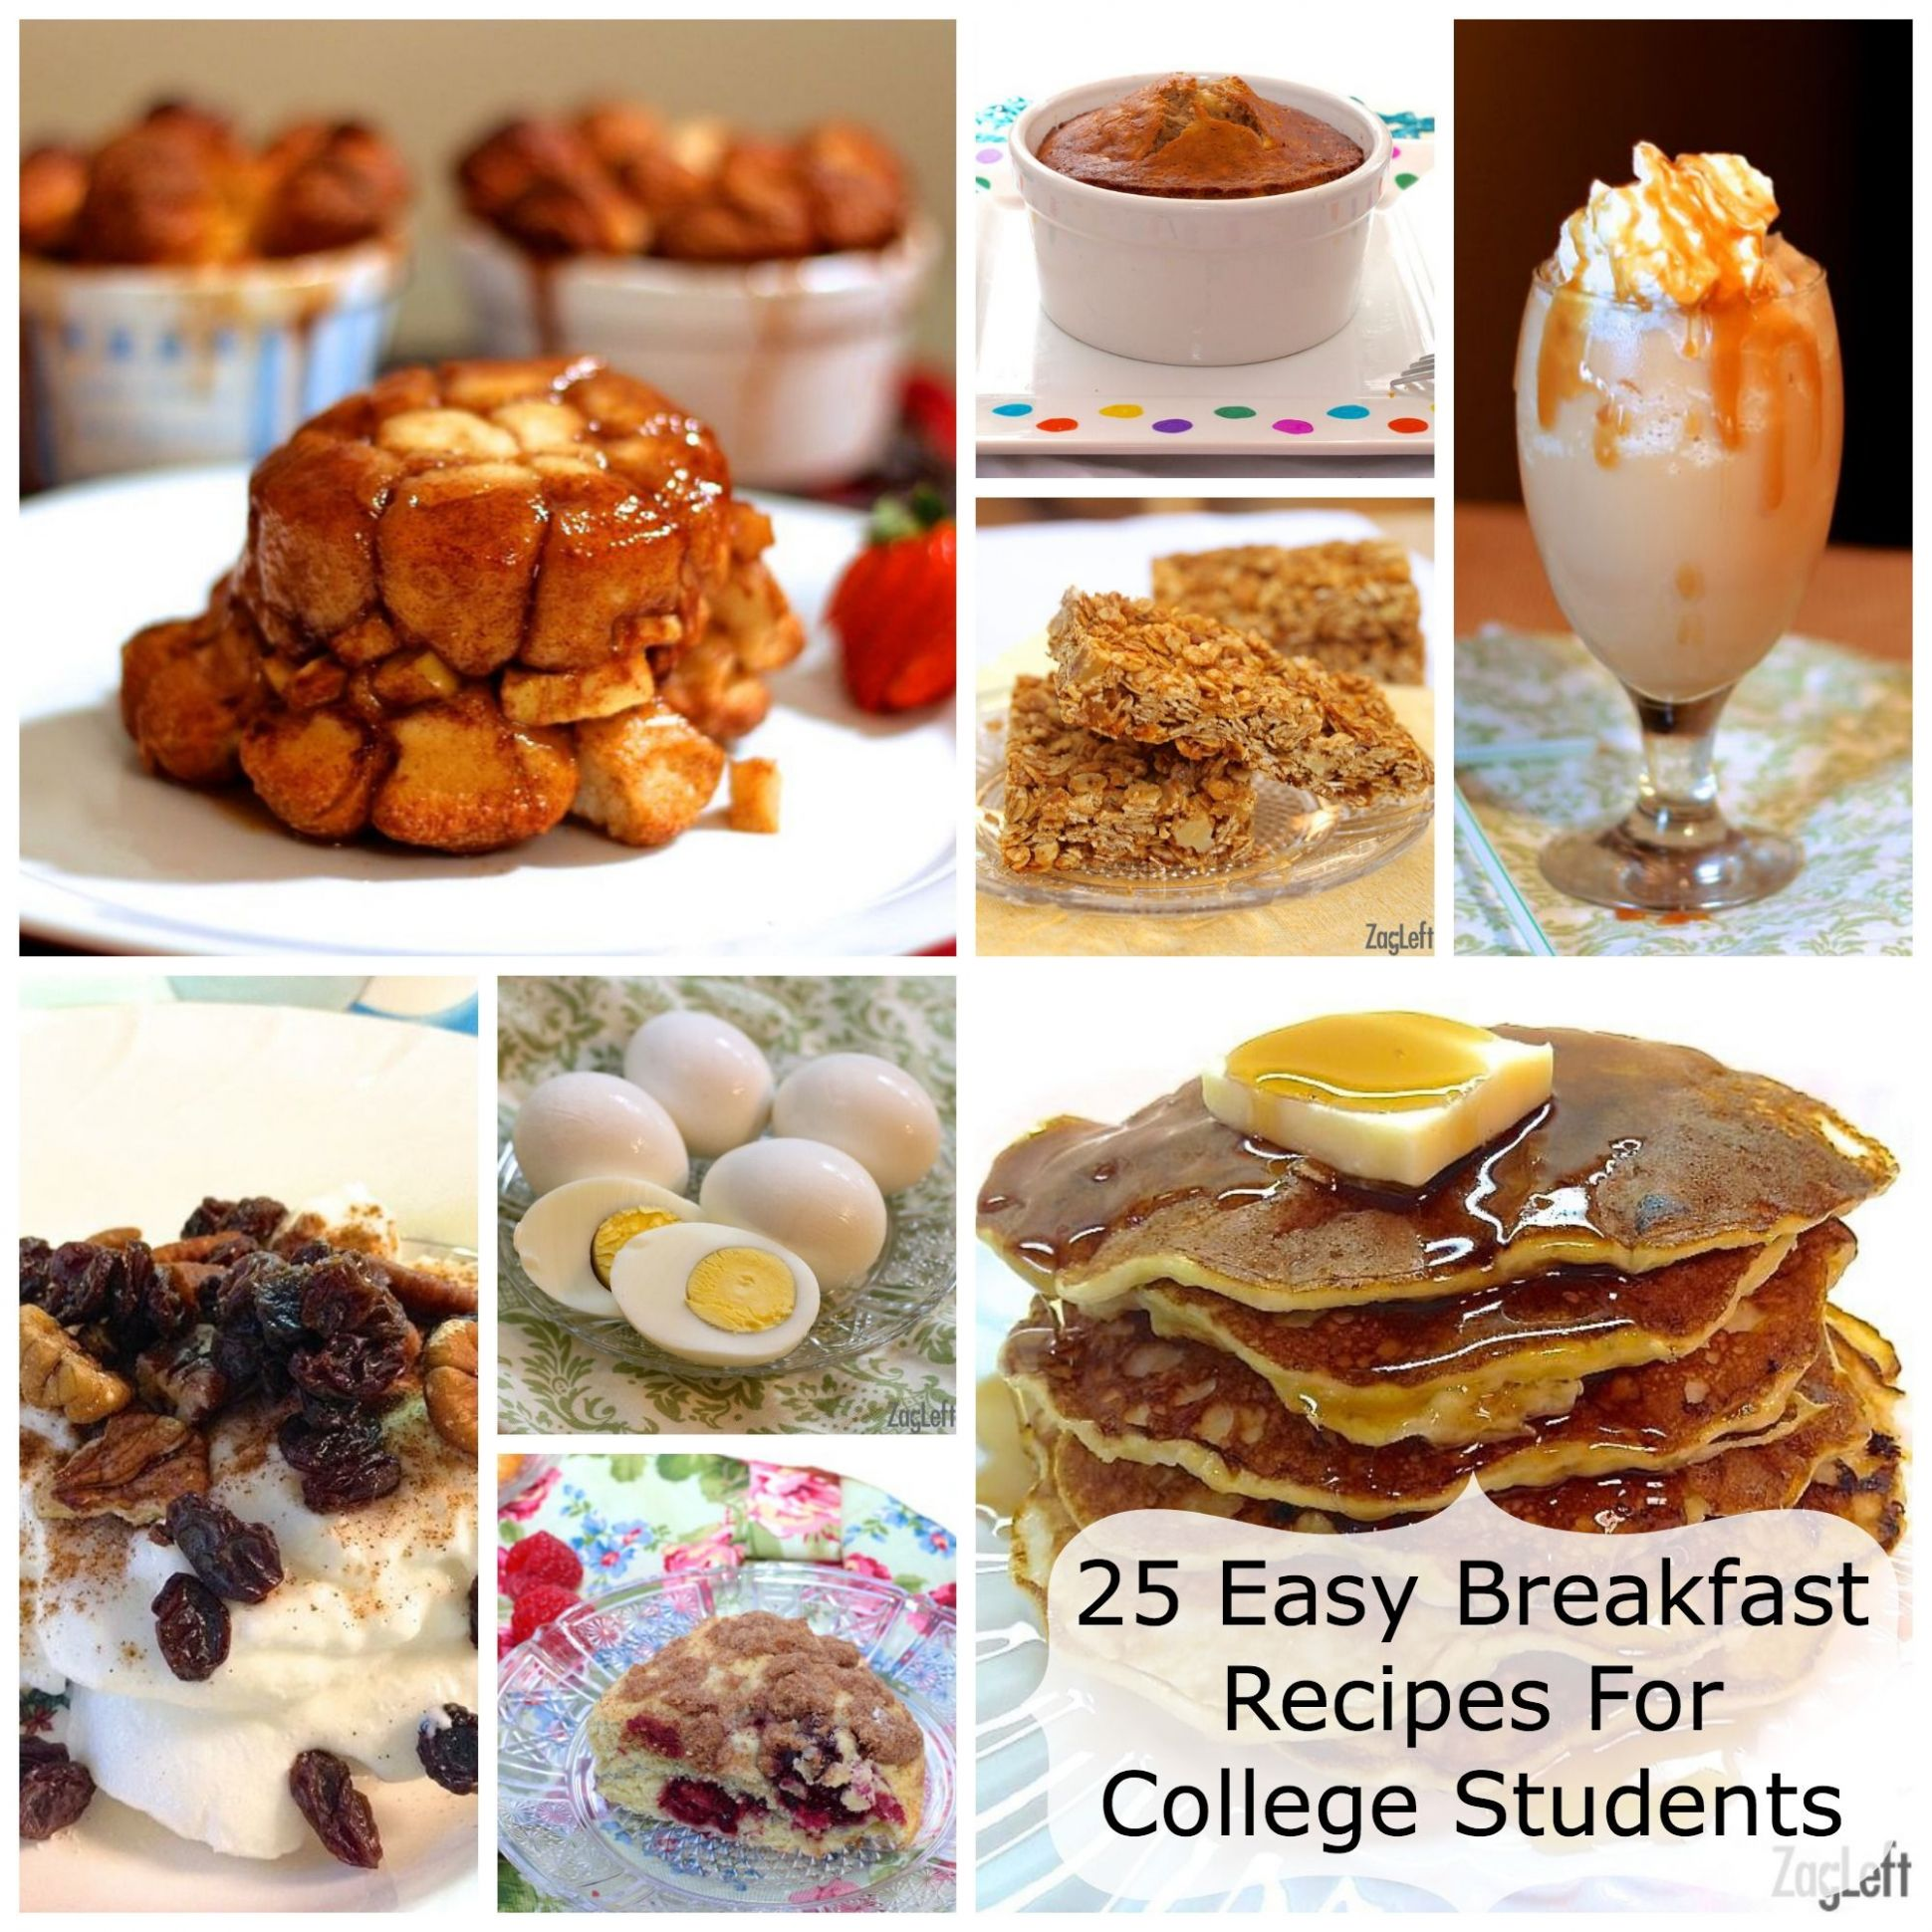 9 Easy Breakfast Recipes For College Students | Easy baking ..